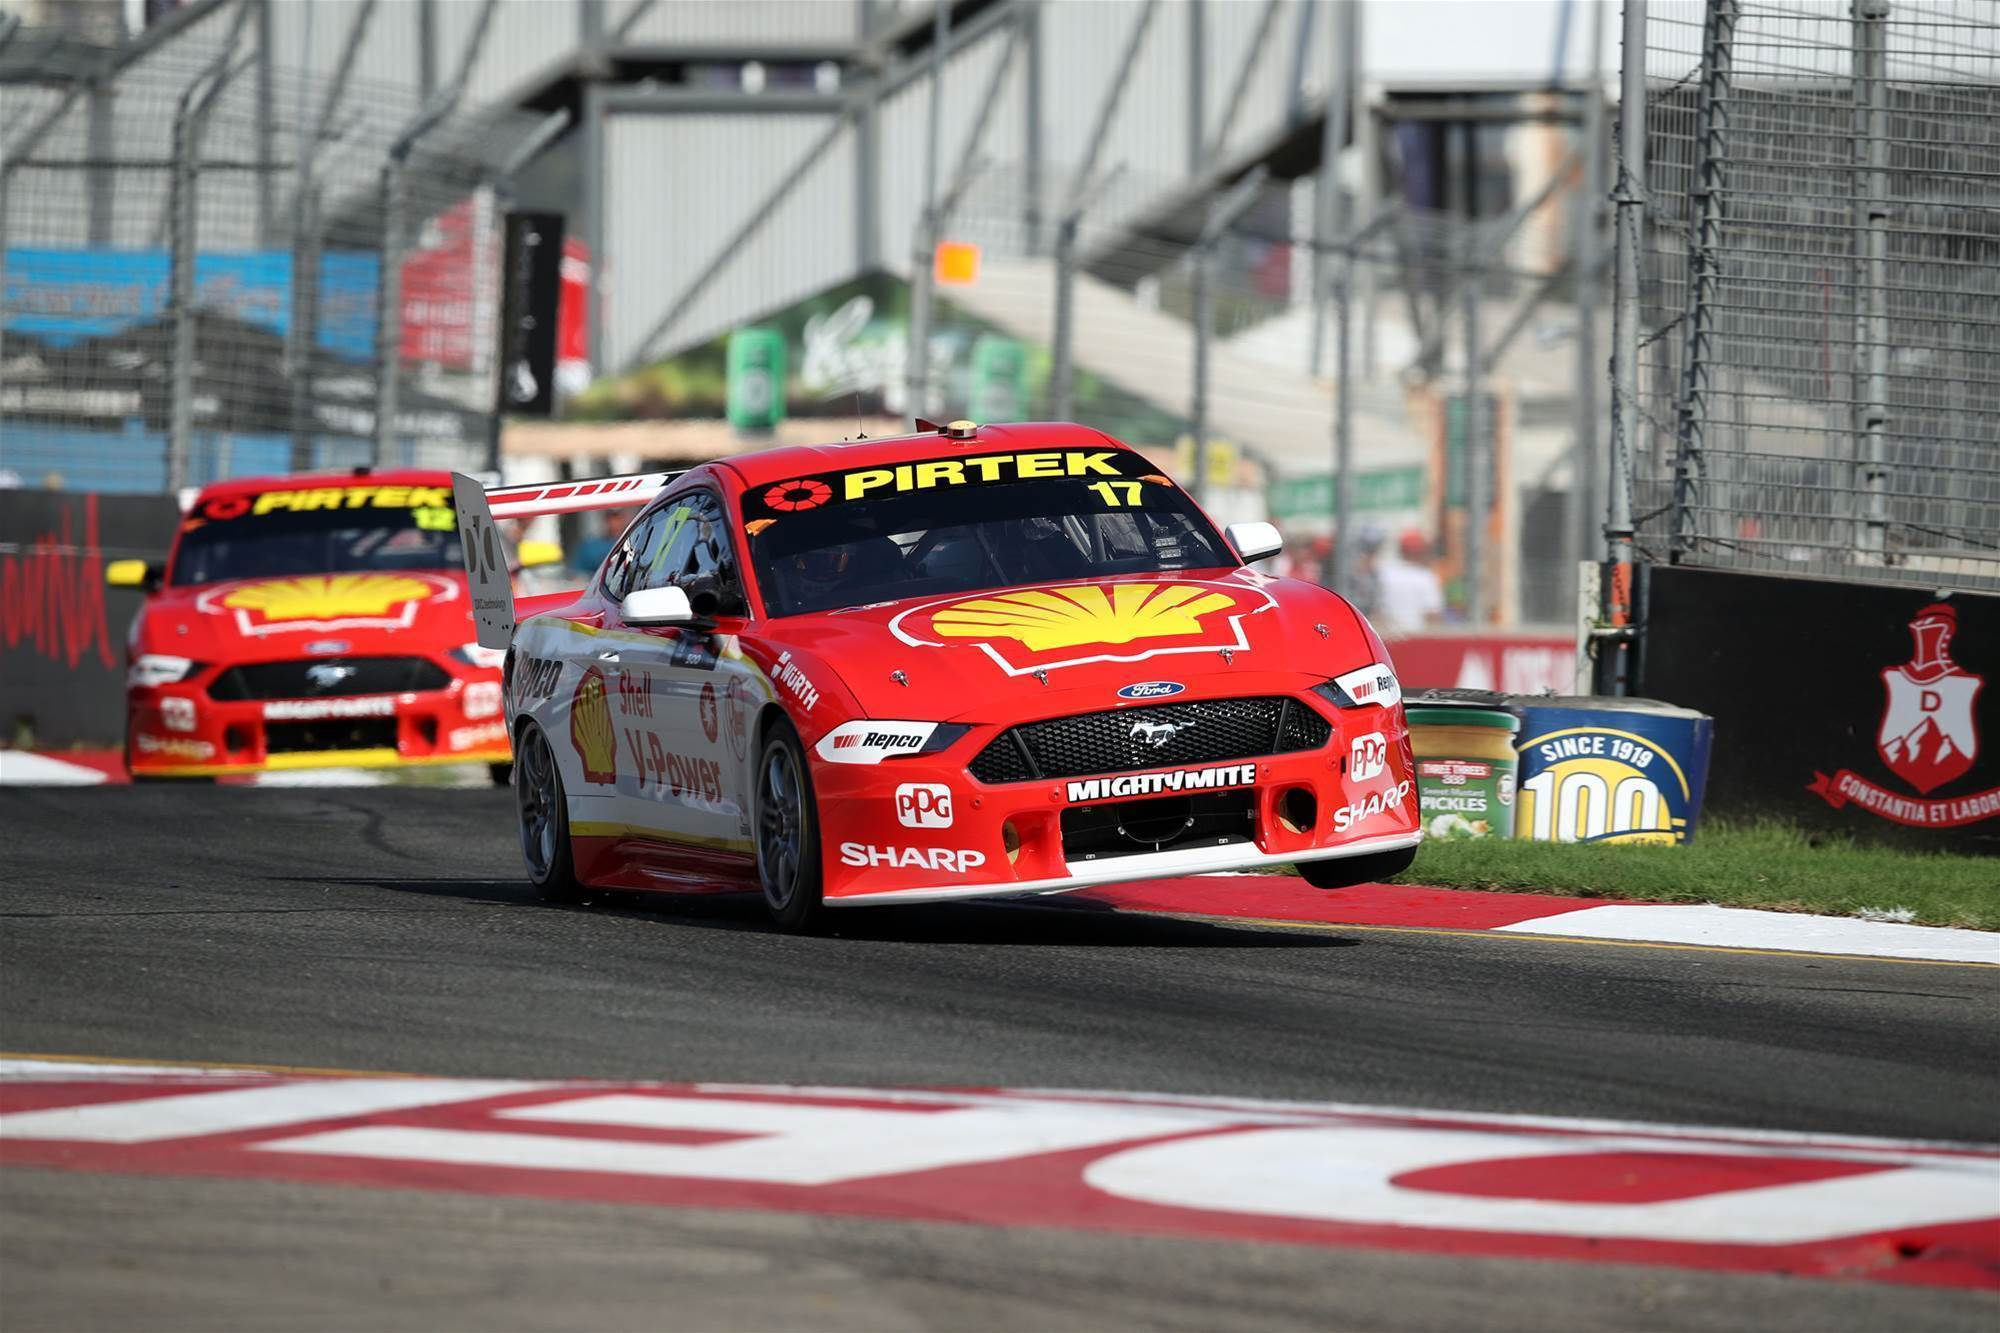 Mustang rides high in Supercars debut